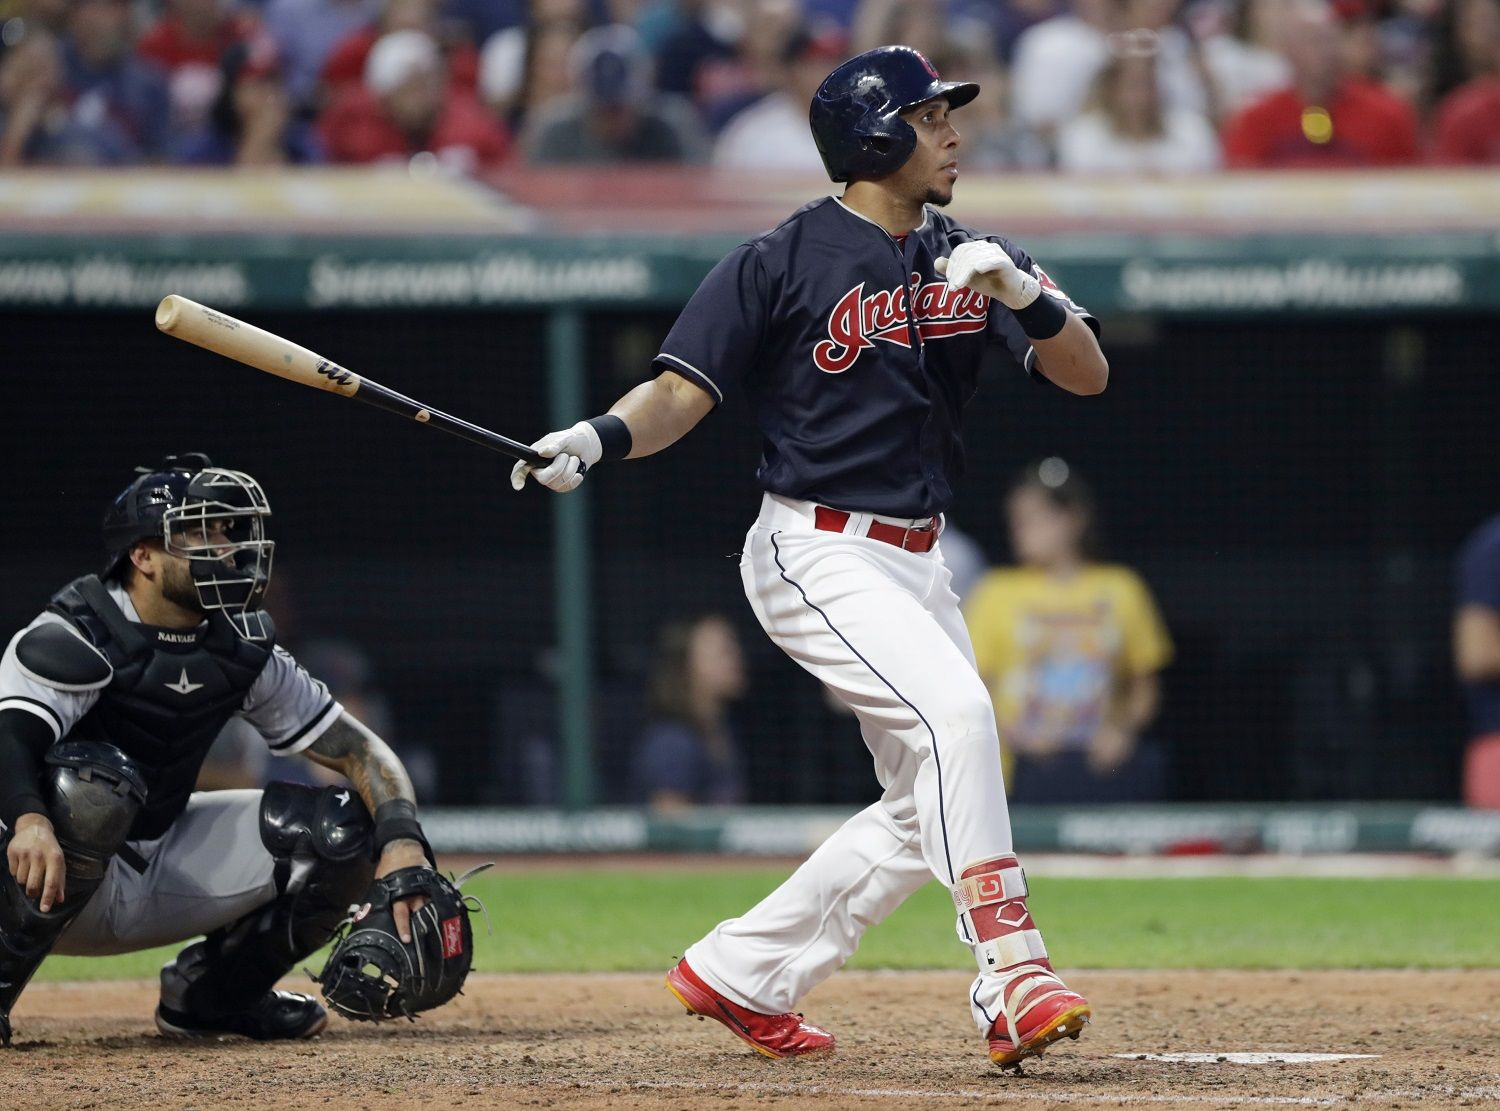 Cleveland Indians' Michael Brantley watches his ball after hitting a one-run double in the seventh inning of a baseball game against the Chicago White Sox, Tuesday, June 19, 2018, in Cleveland. Rajai Davis scored on the play. Catcher Omar Narvaez watches. (AP Photo/Tony Dejak)